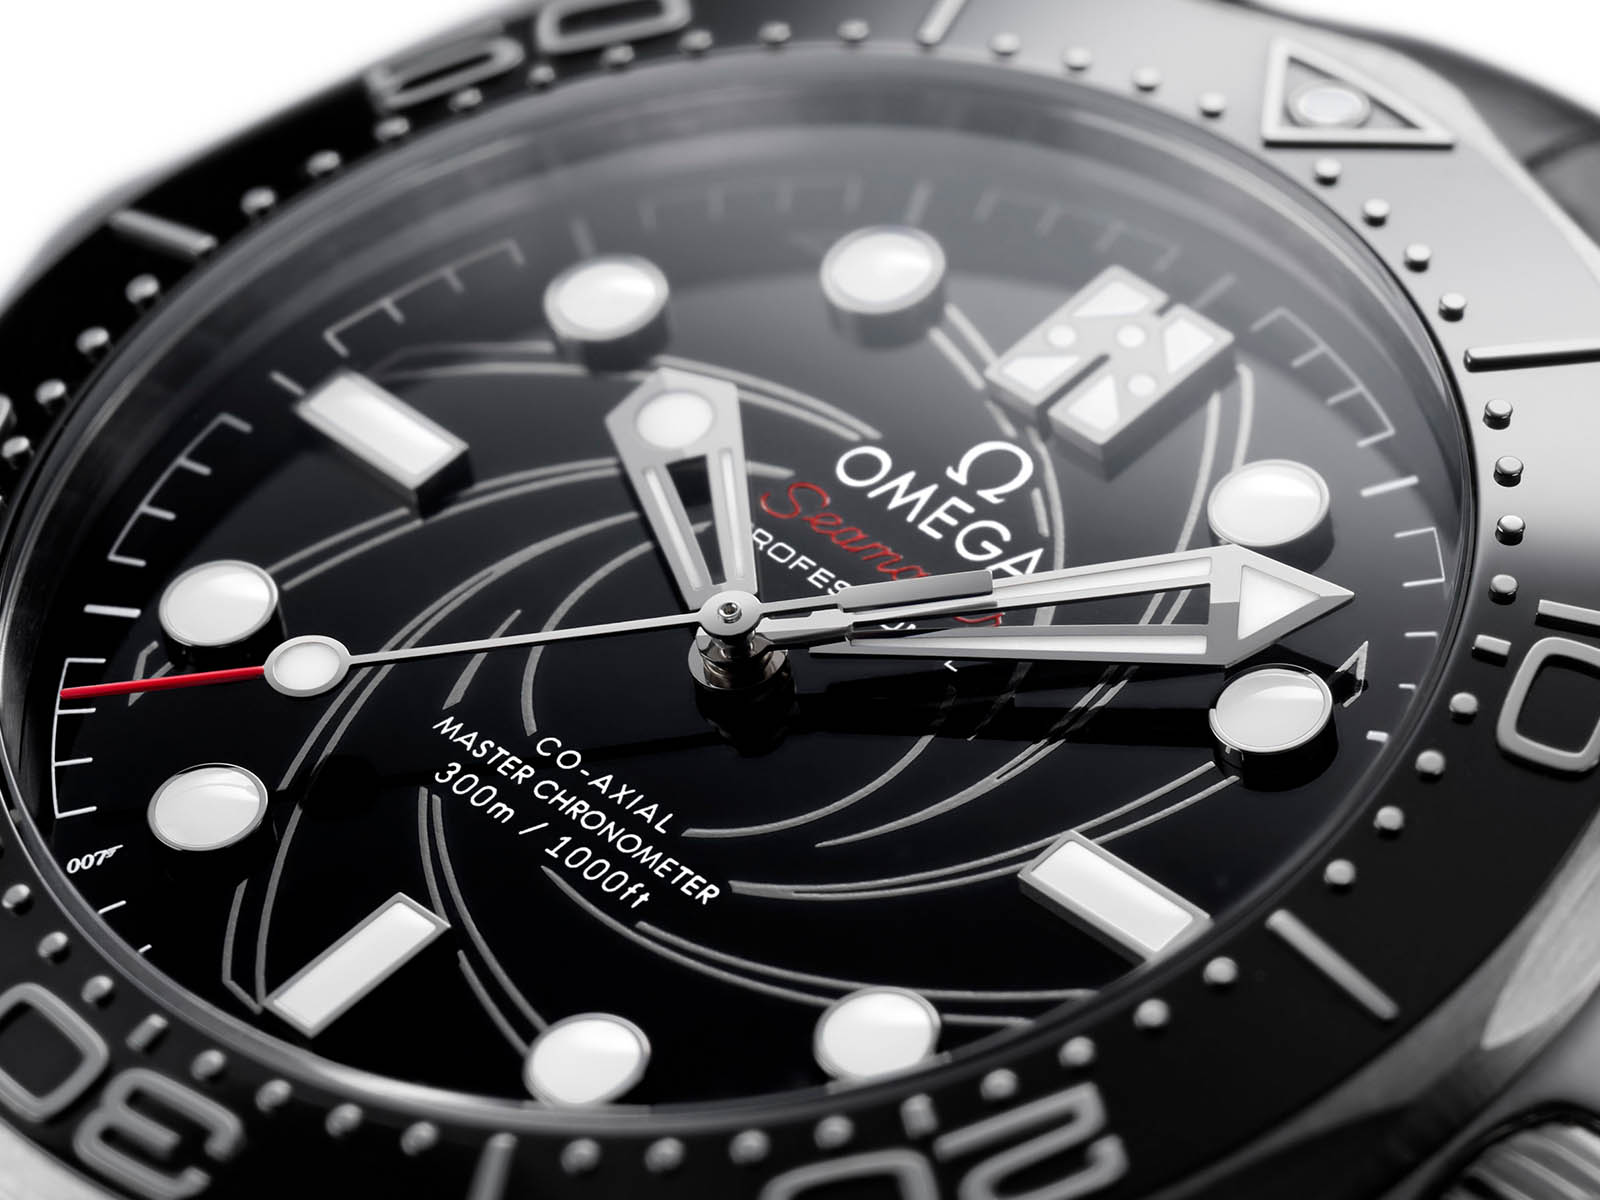 210-93-42-20-01-001-omega-seamaster-diver-300m-james-bond-numbered-edition-5.jpg